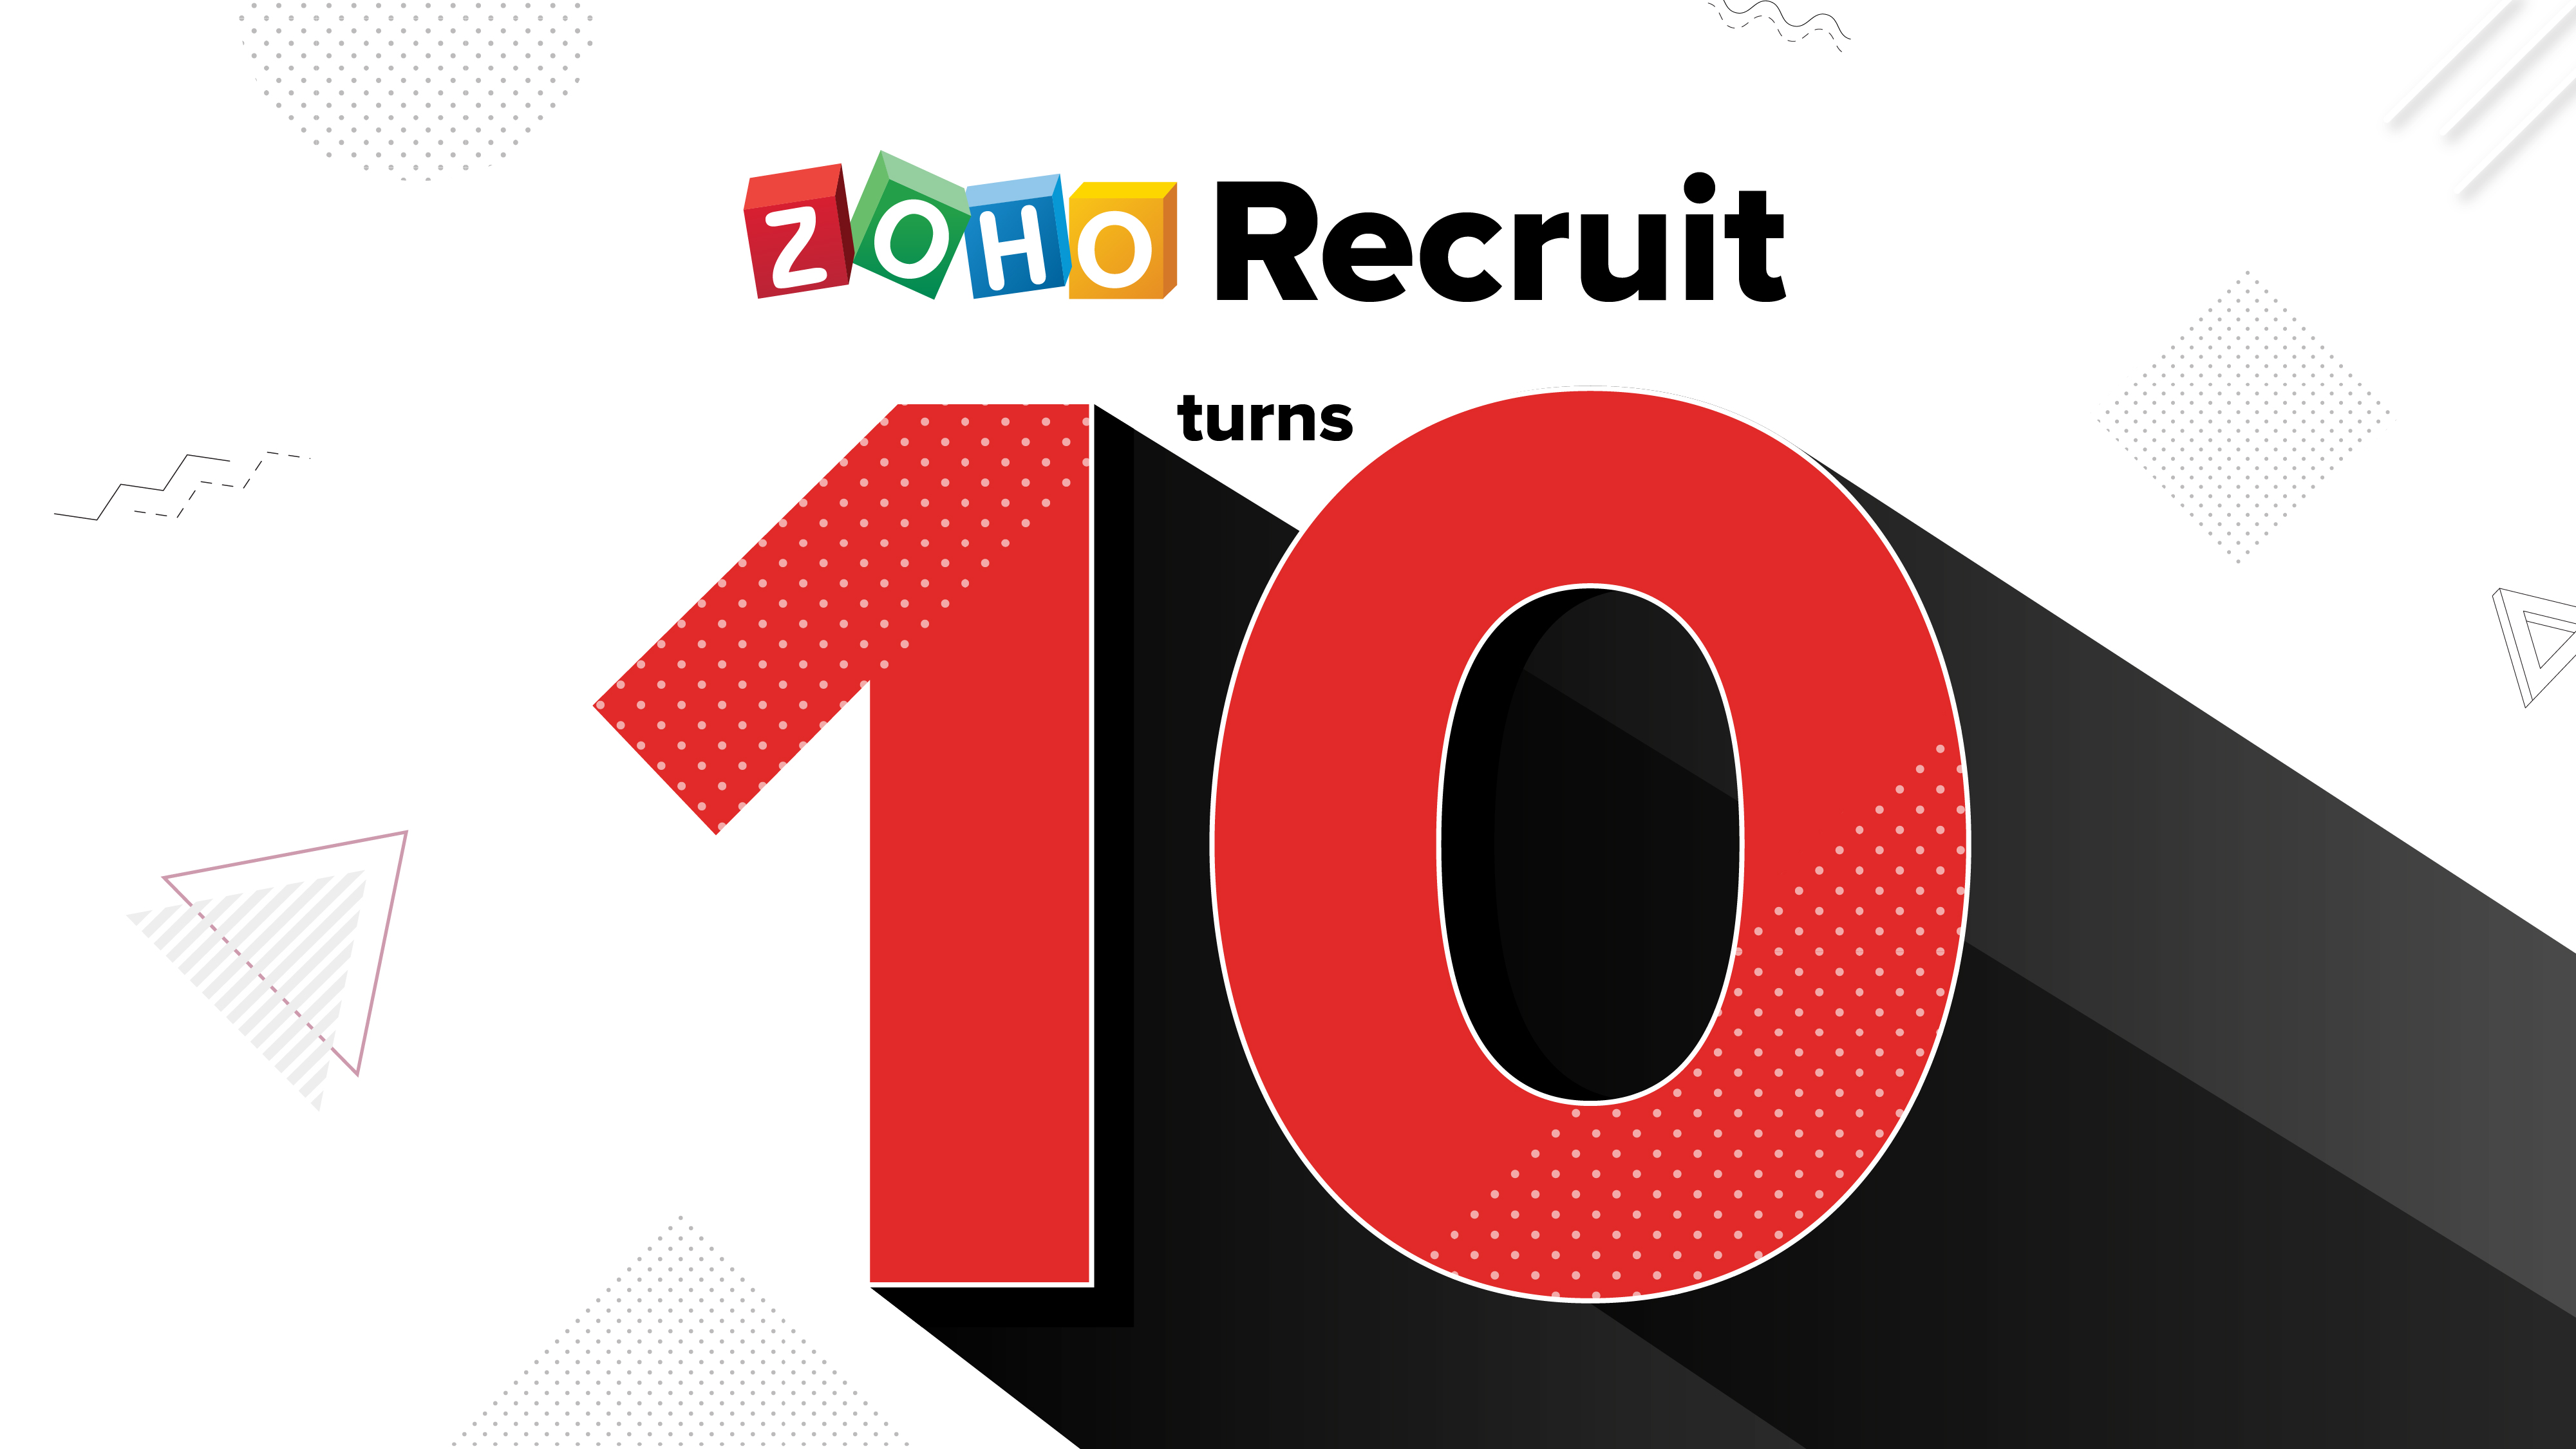 The all-new Zoho Recruit: better processes, better sourcing, and better hires